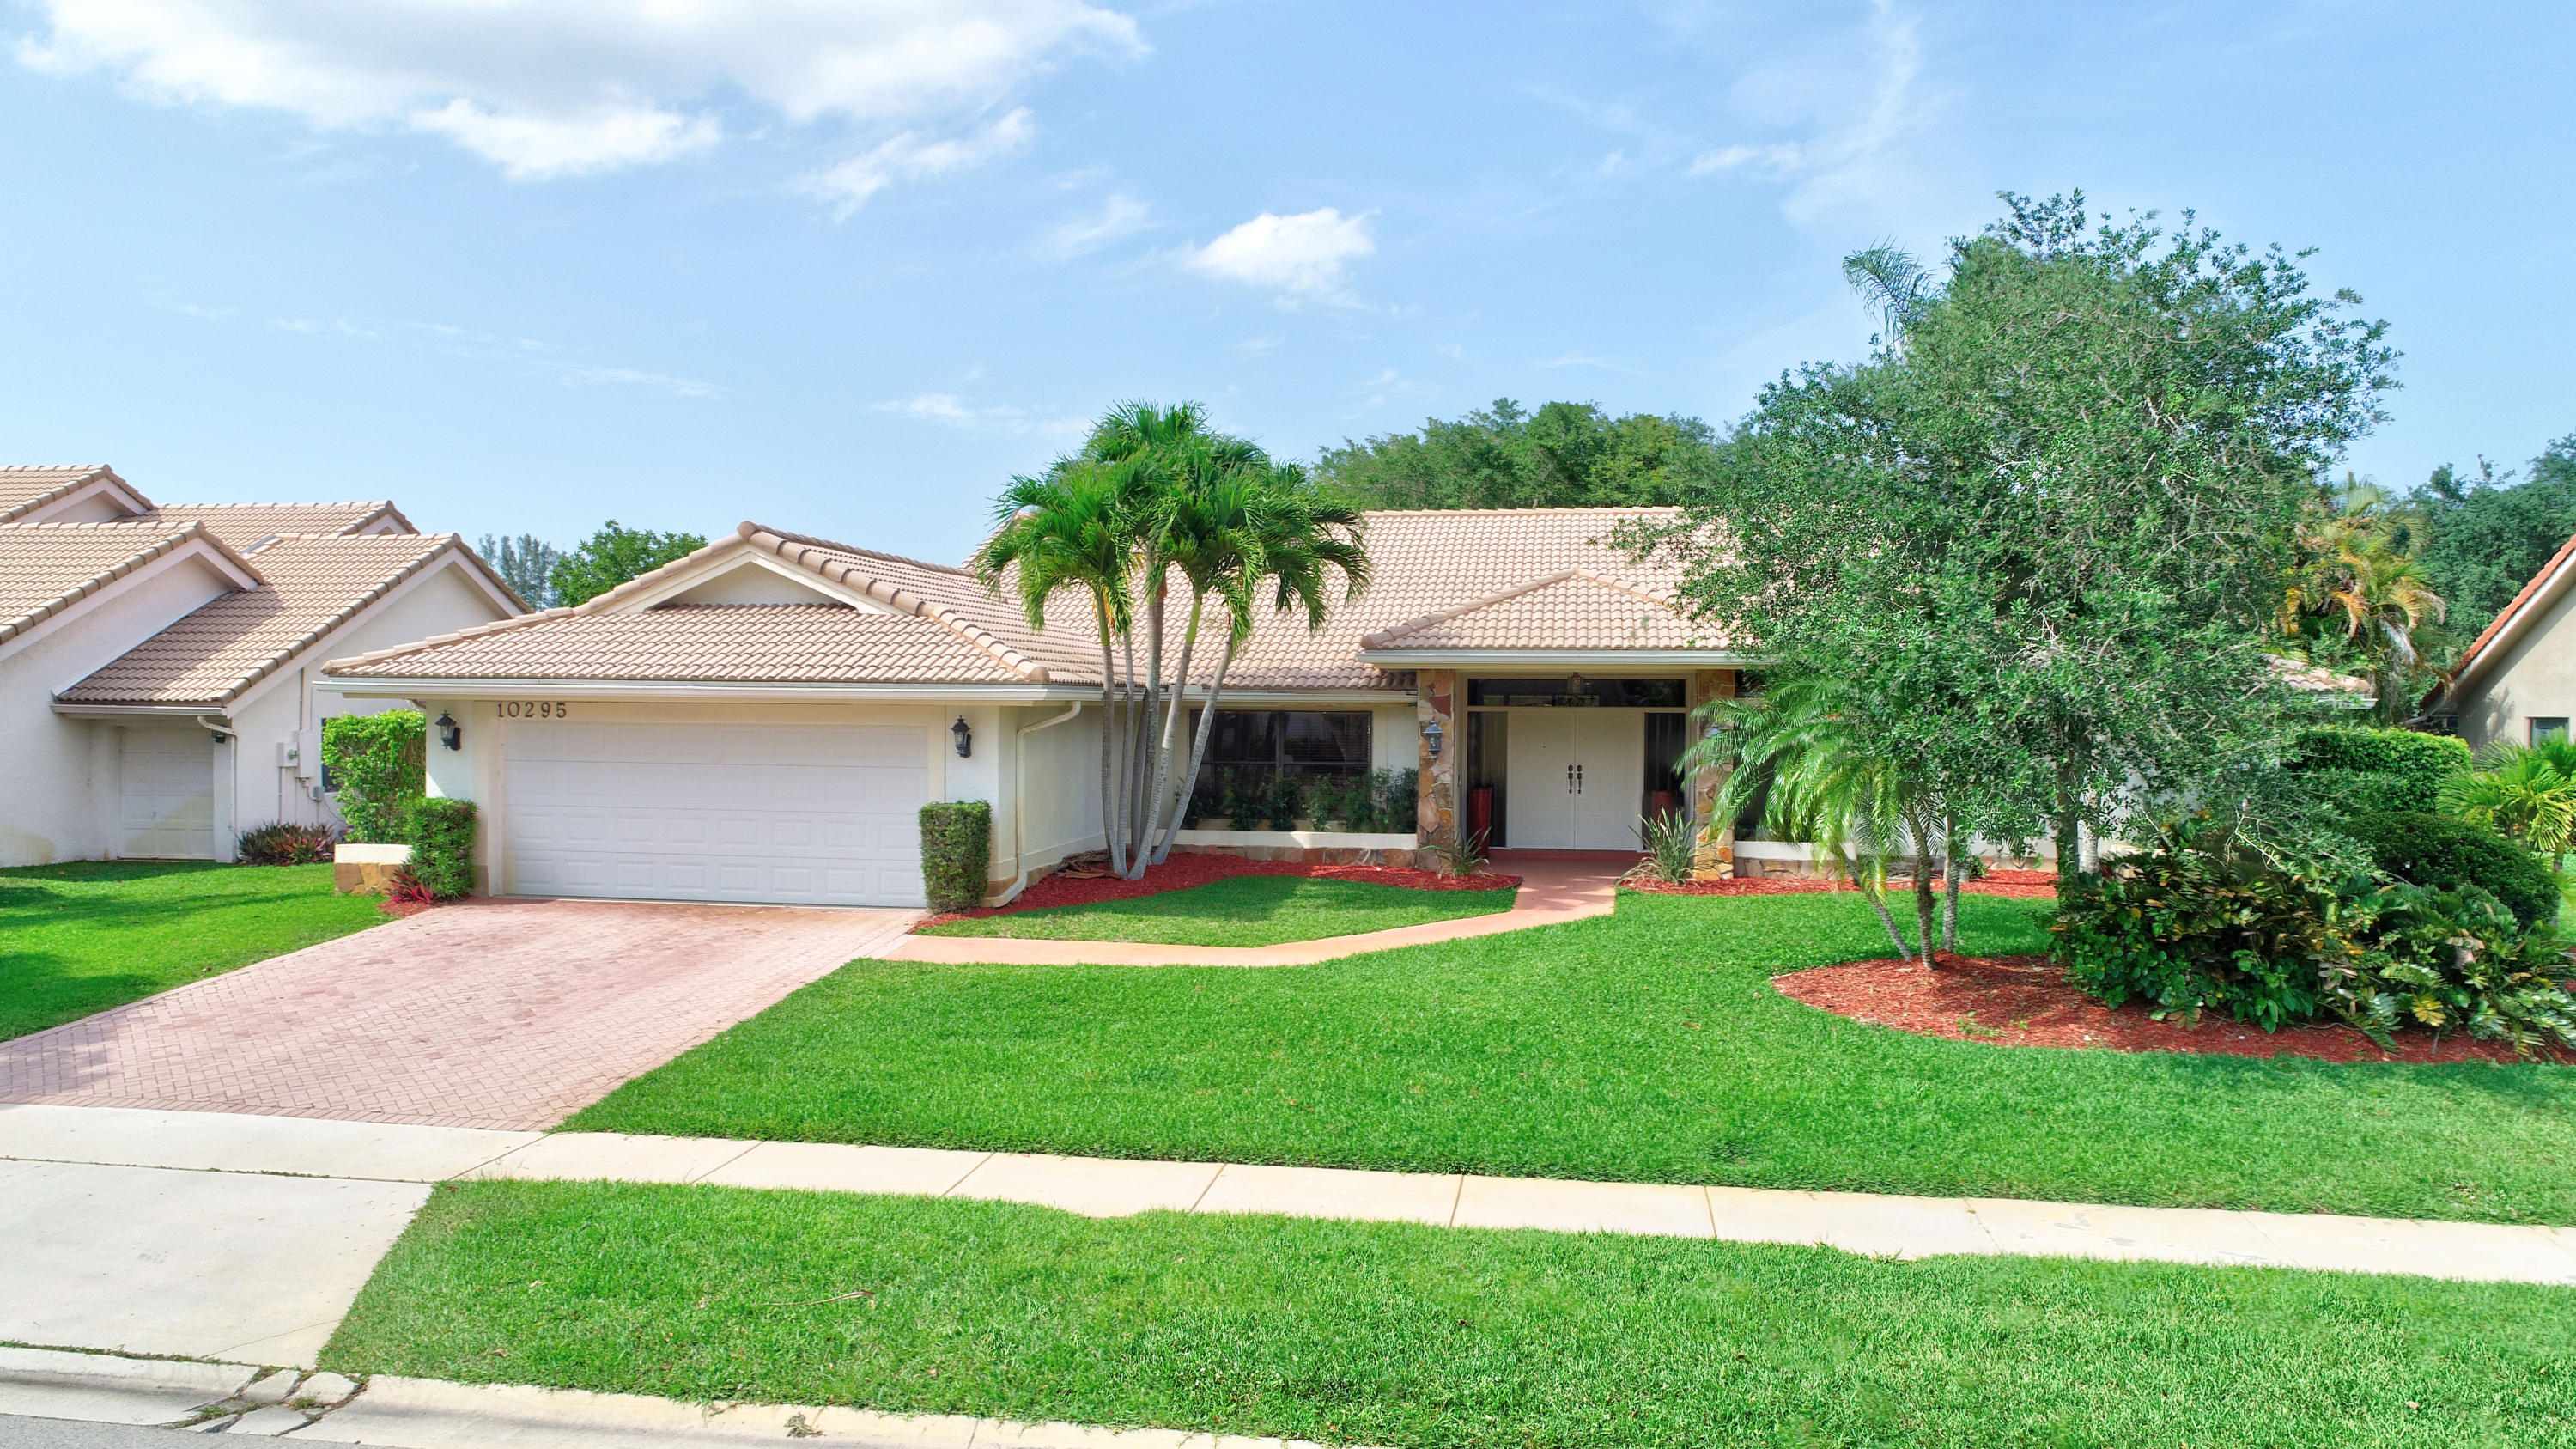 BOCA WOODS COUNTRY CLUB HOMES